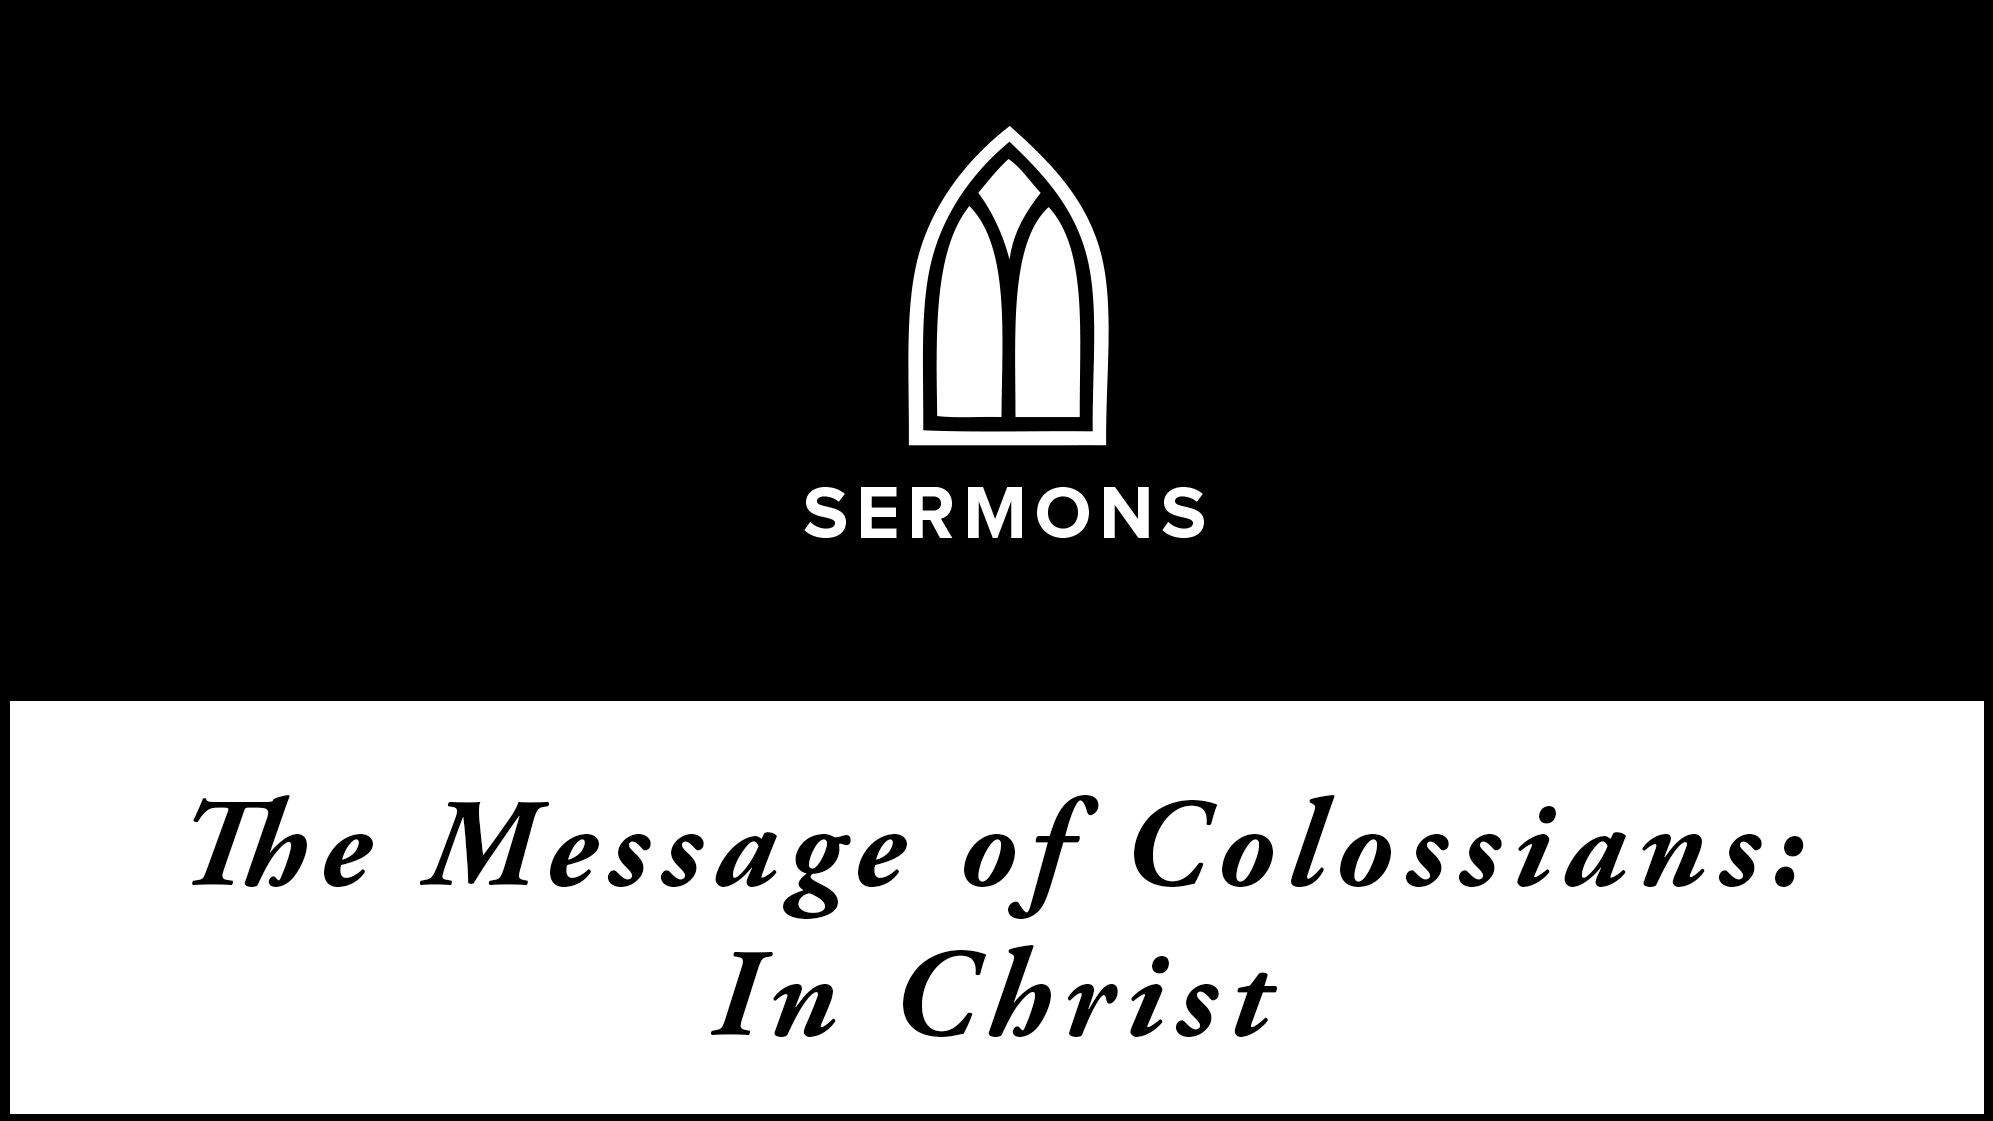 Colossians-in-christ-16x9.png